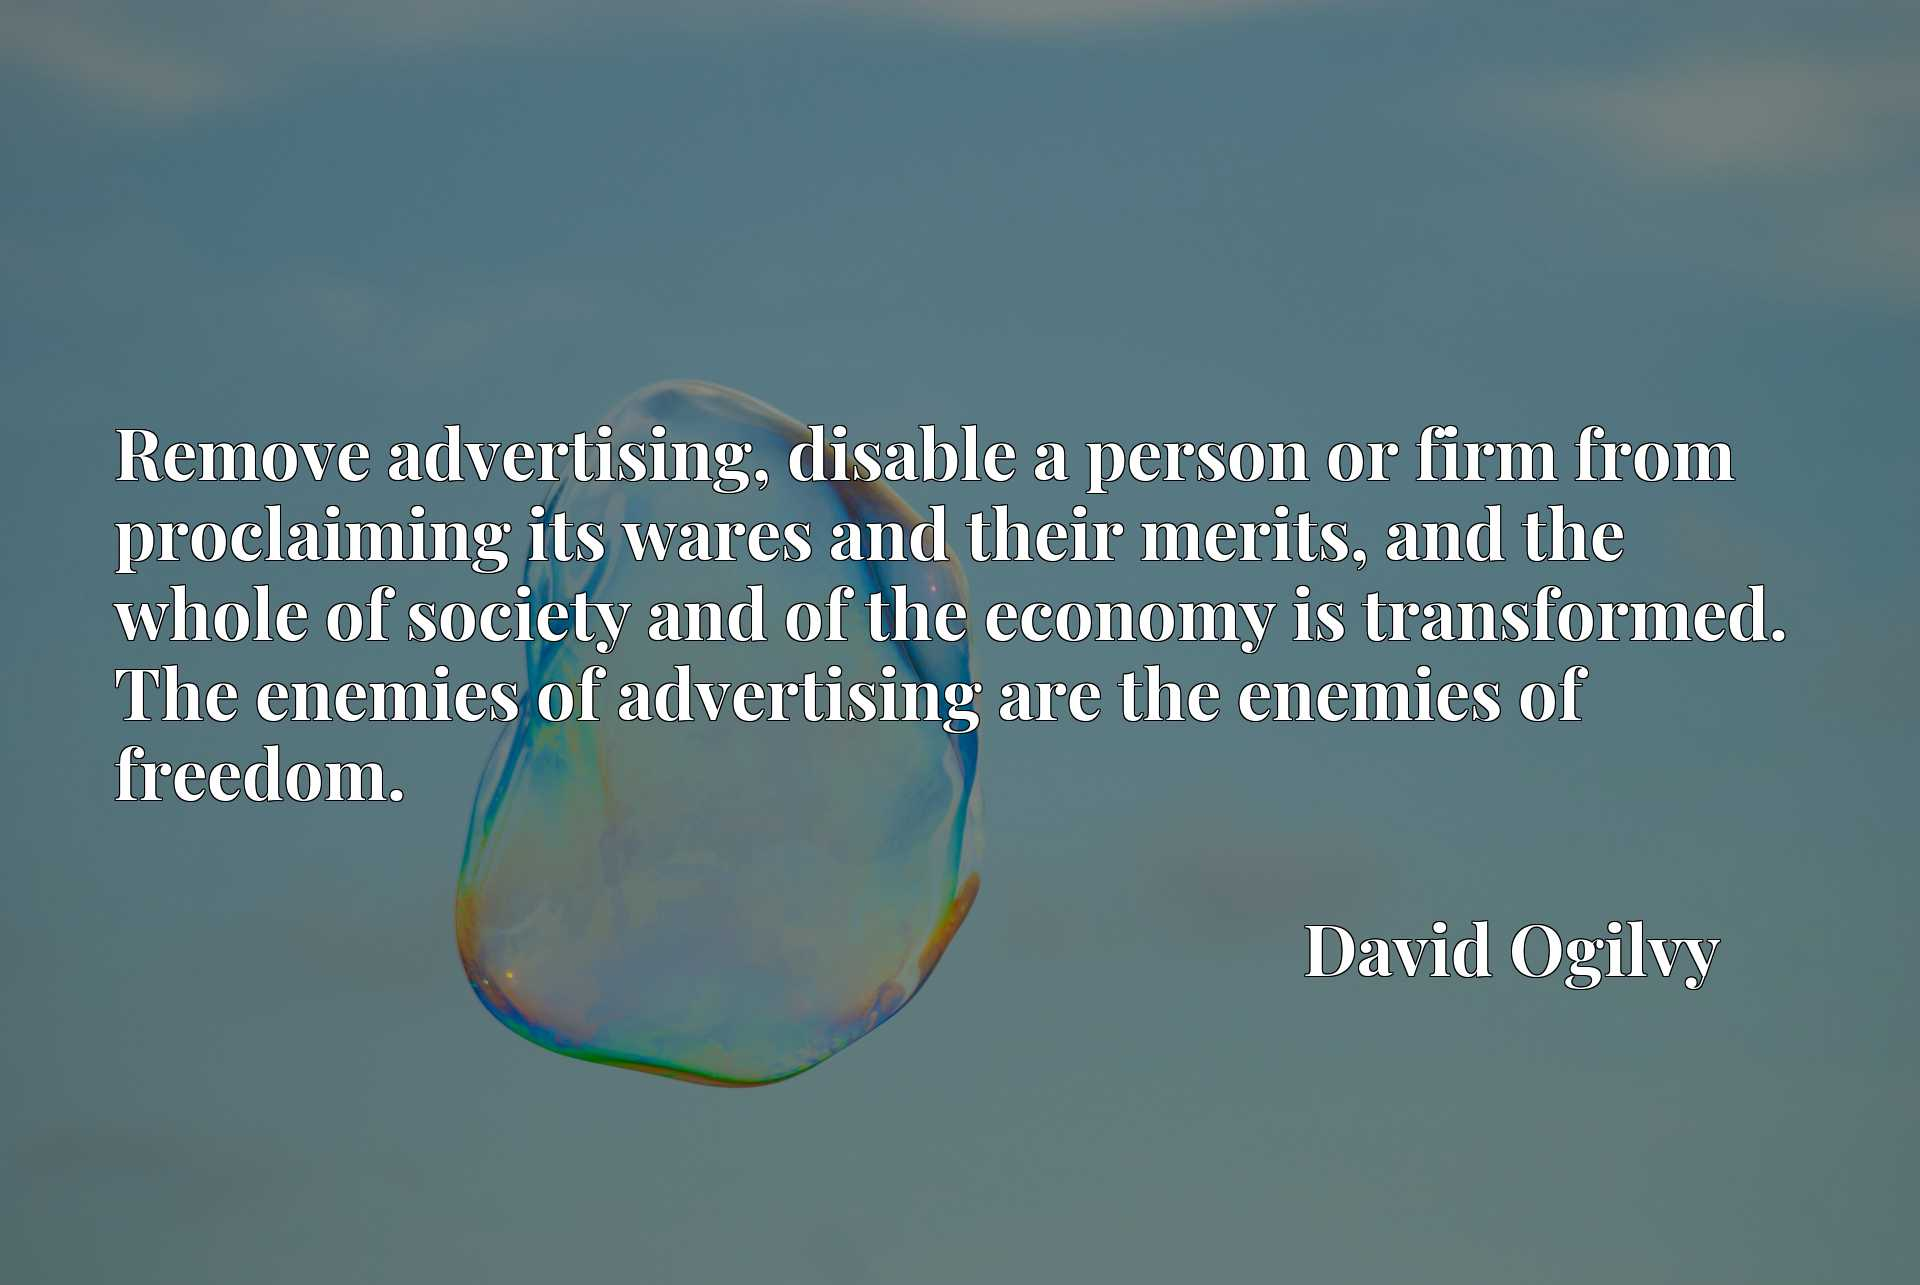 Remove advertising, disable a person or firm from proclaiming its wares and their merits, and the whole of society and of the economy is transformed. The enemies of advertising are the enemies of freedom.